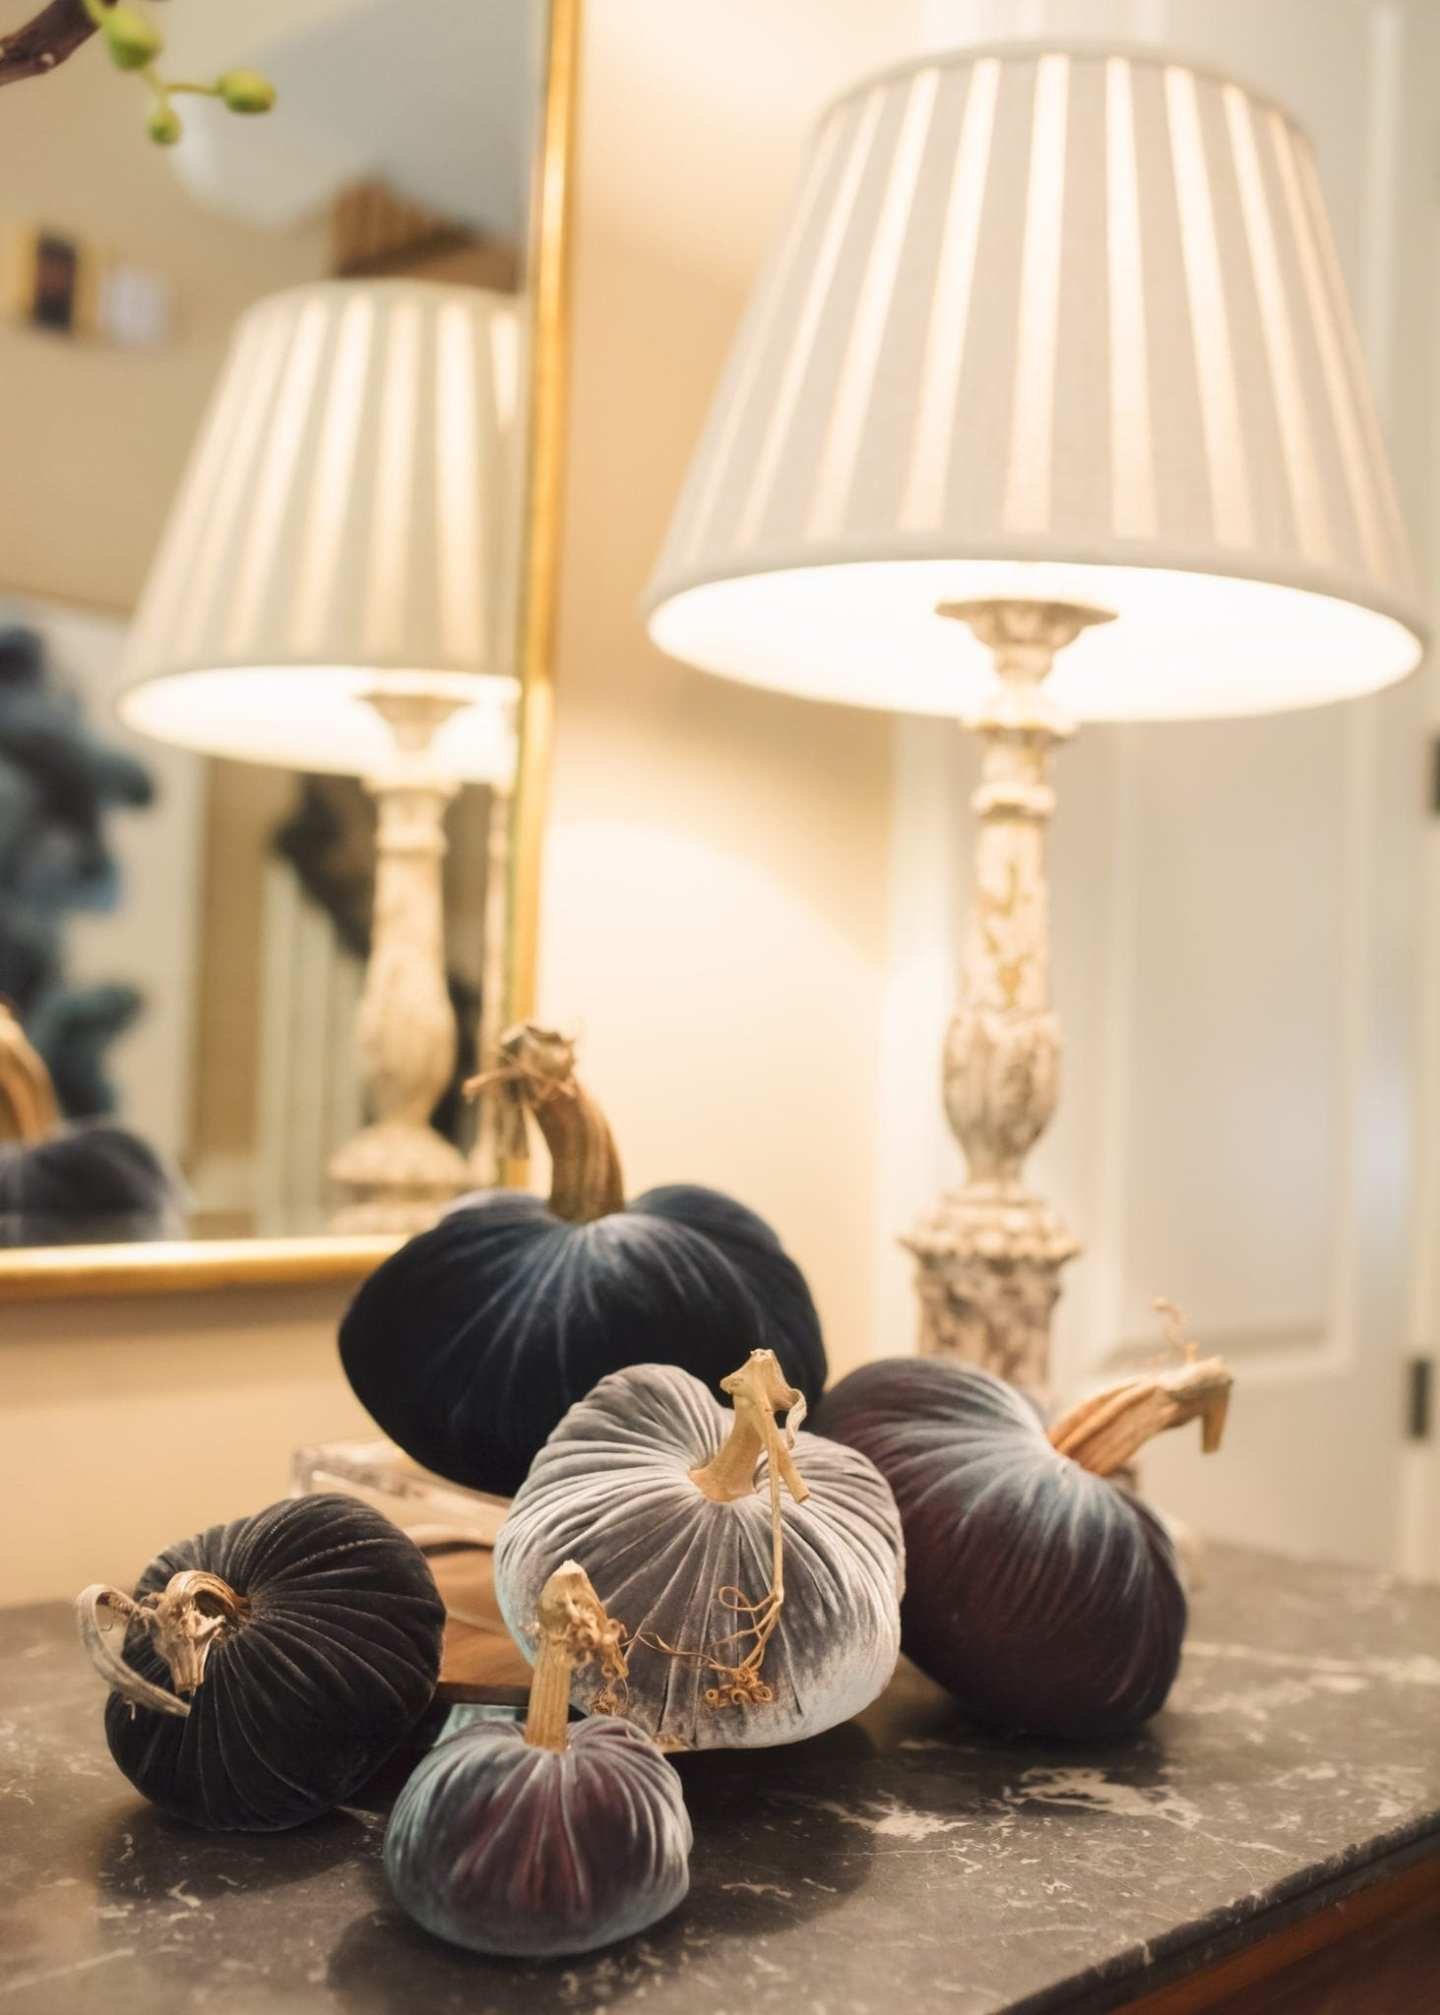 Fall entryway decor. Decorate your foyer or table for autumn with these velvet pumpkins!